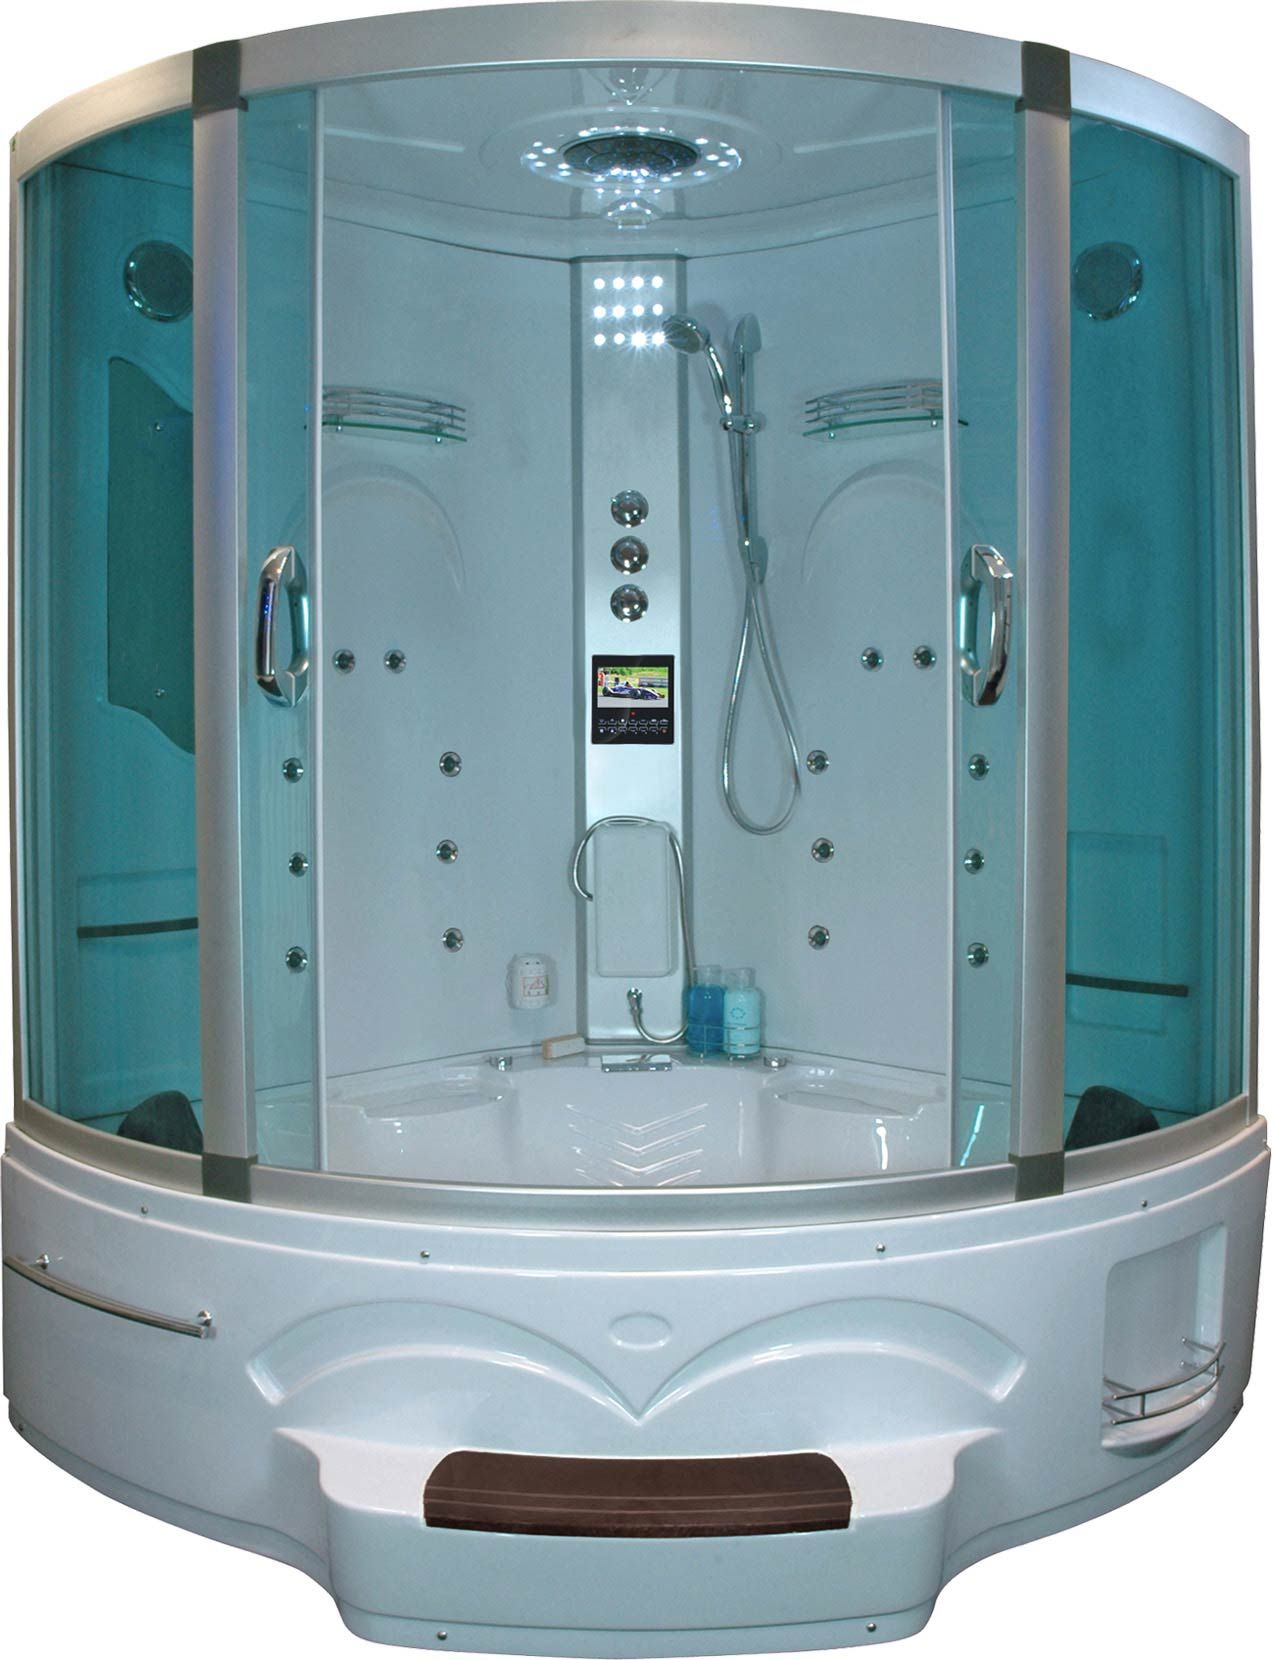 2 Person Steam Shower Room With Jacuzzi Whirlpool And Tv With